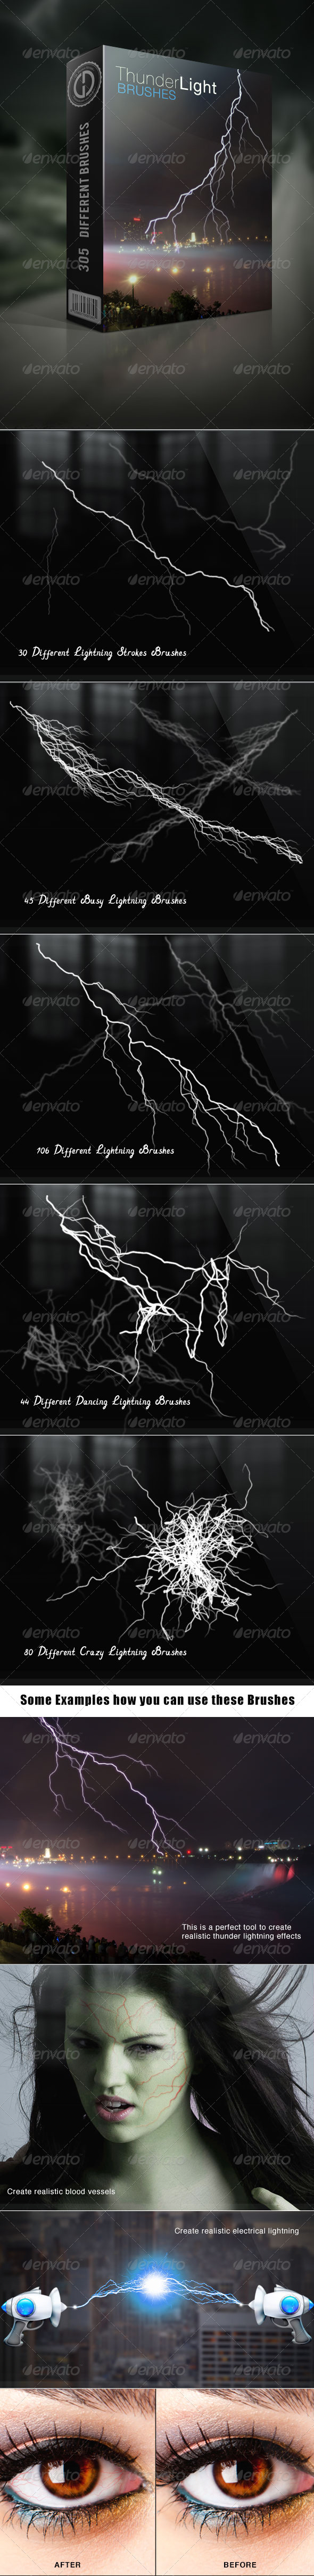 GraphicRiver Thunder Lightning Brushes 6283100